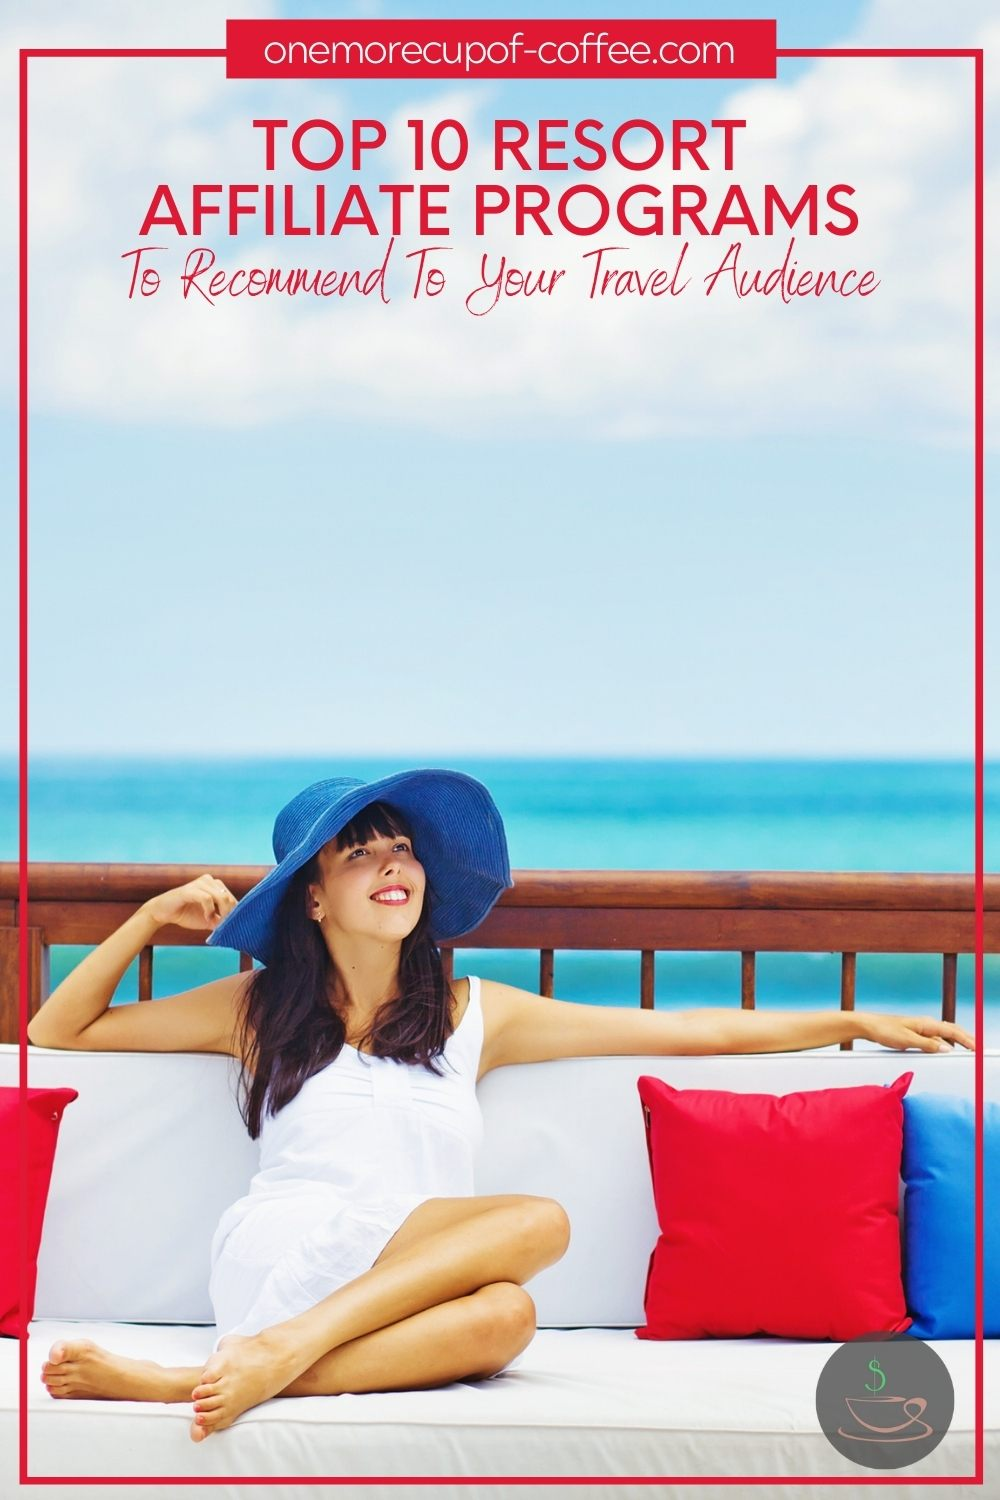 """woman with blue hat and white sun dress lounging on an outdoor seat with red and blue throw pillow, the ocean at the background, with text overlay at the top """"Top 10 Resort Affiliate Programs To Recommend To Your Travel Audience"""""""